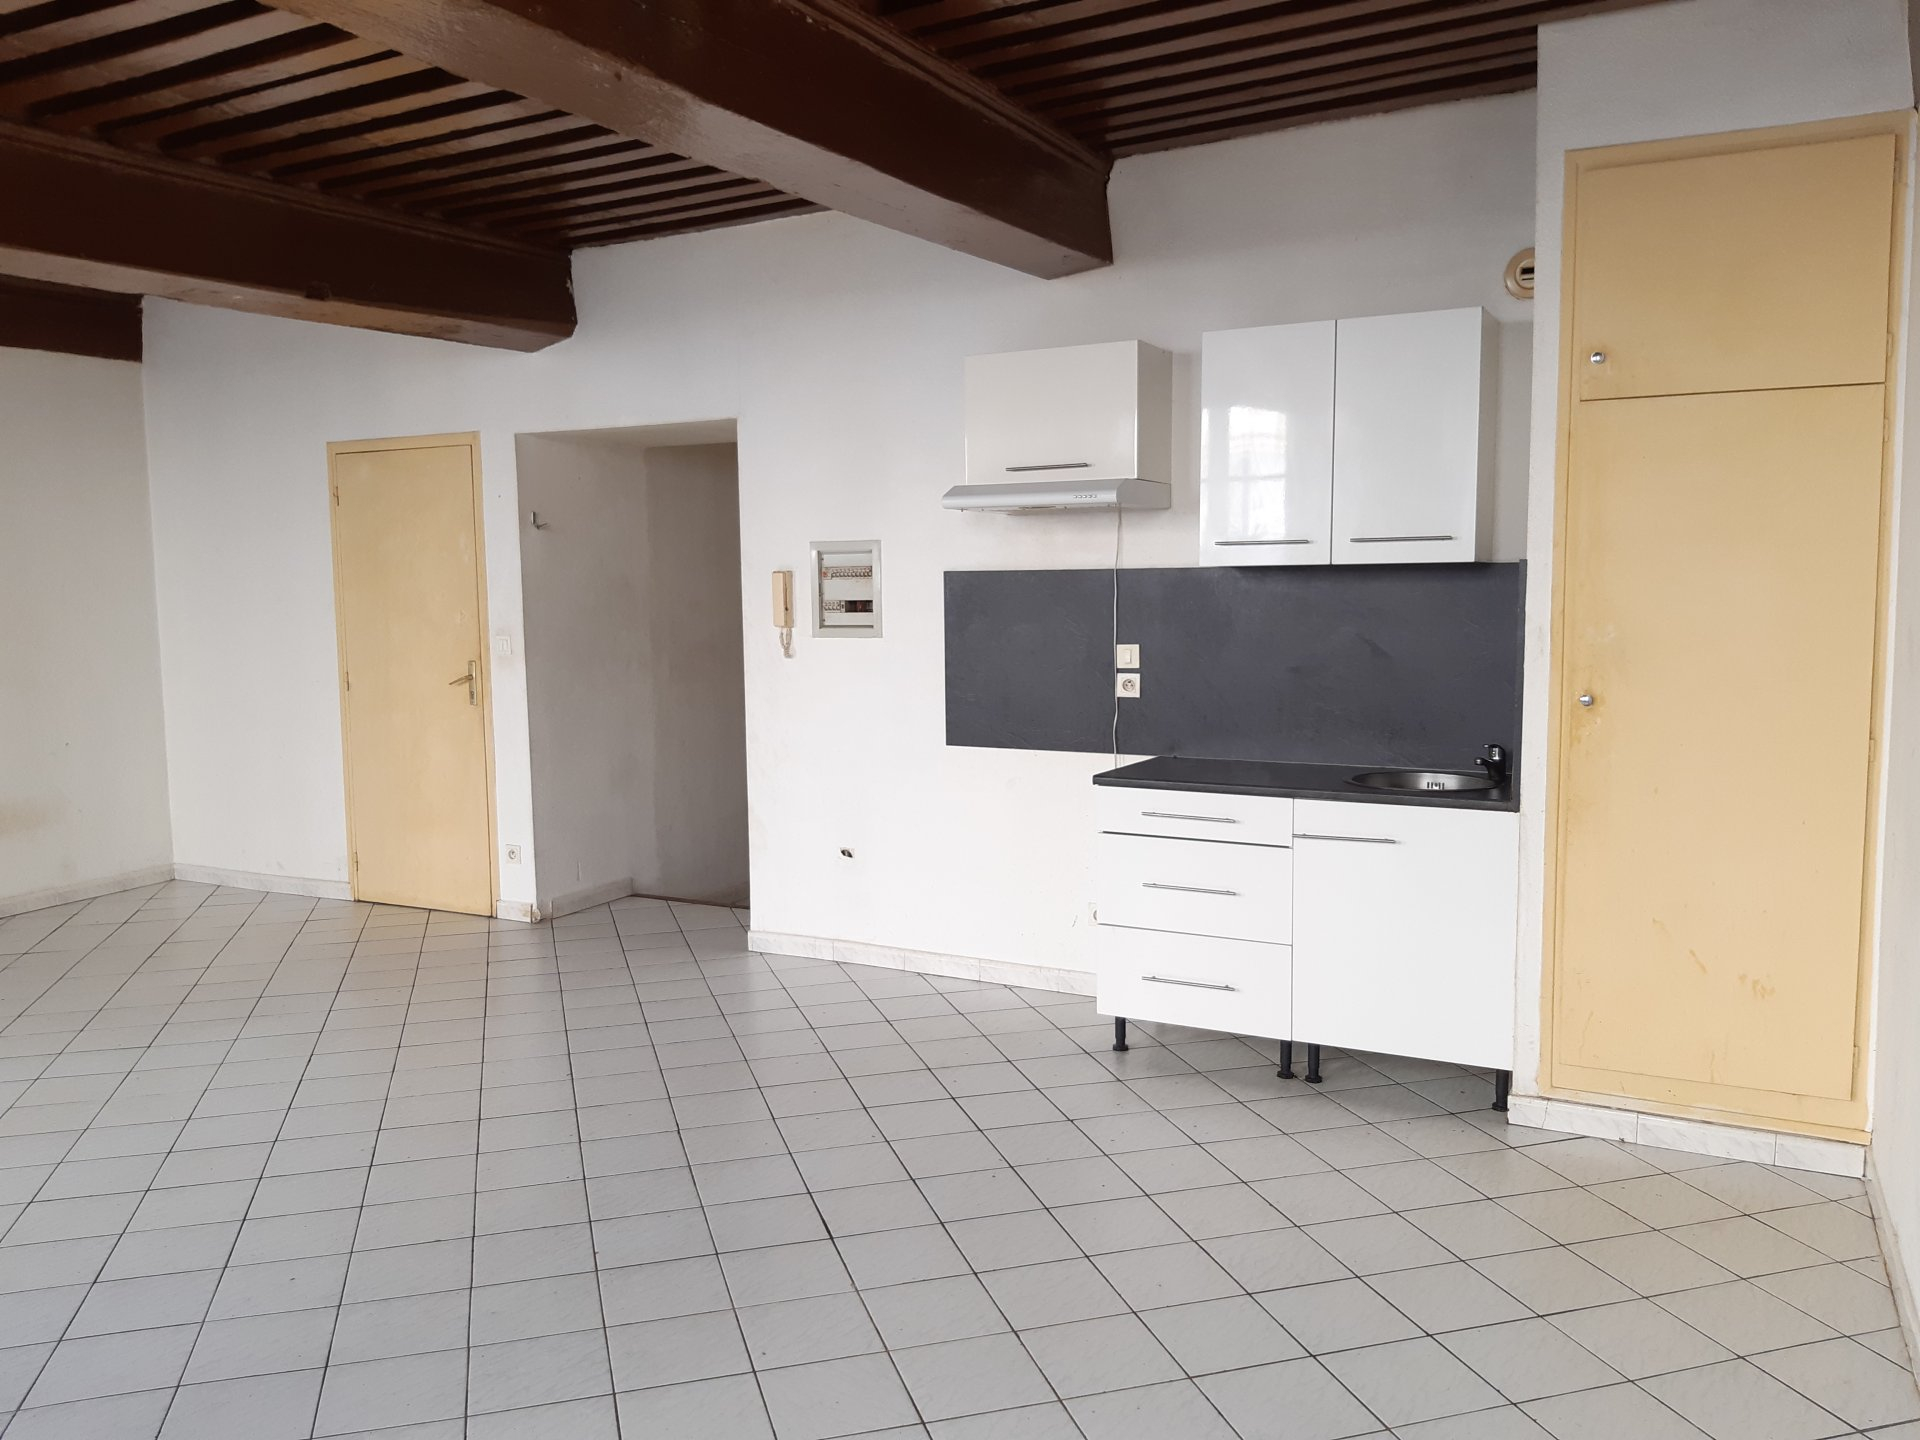 Location Appartement TARASCON Mandat : 0310